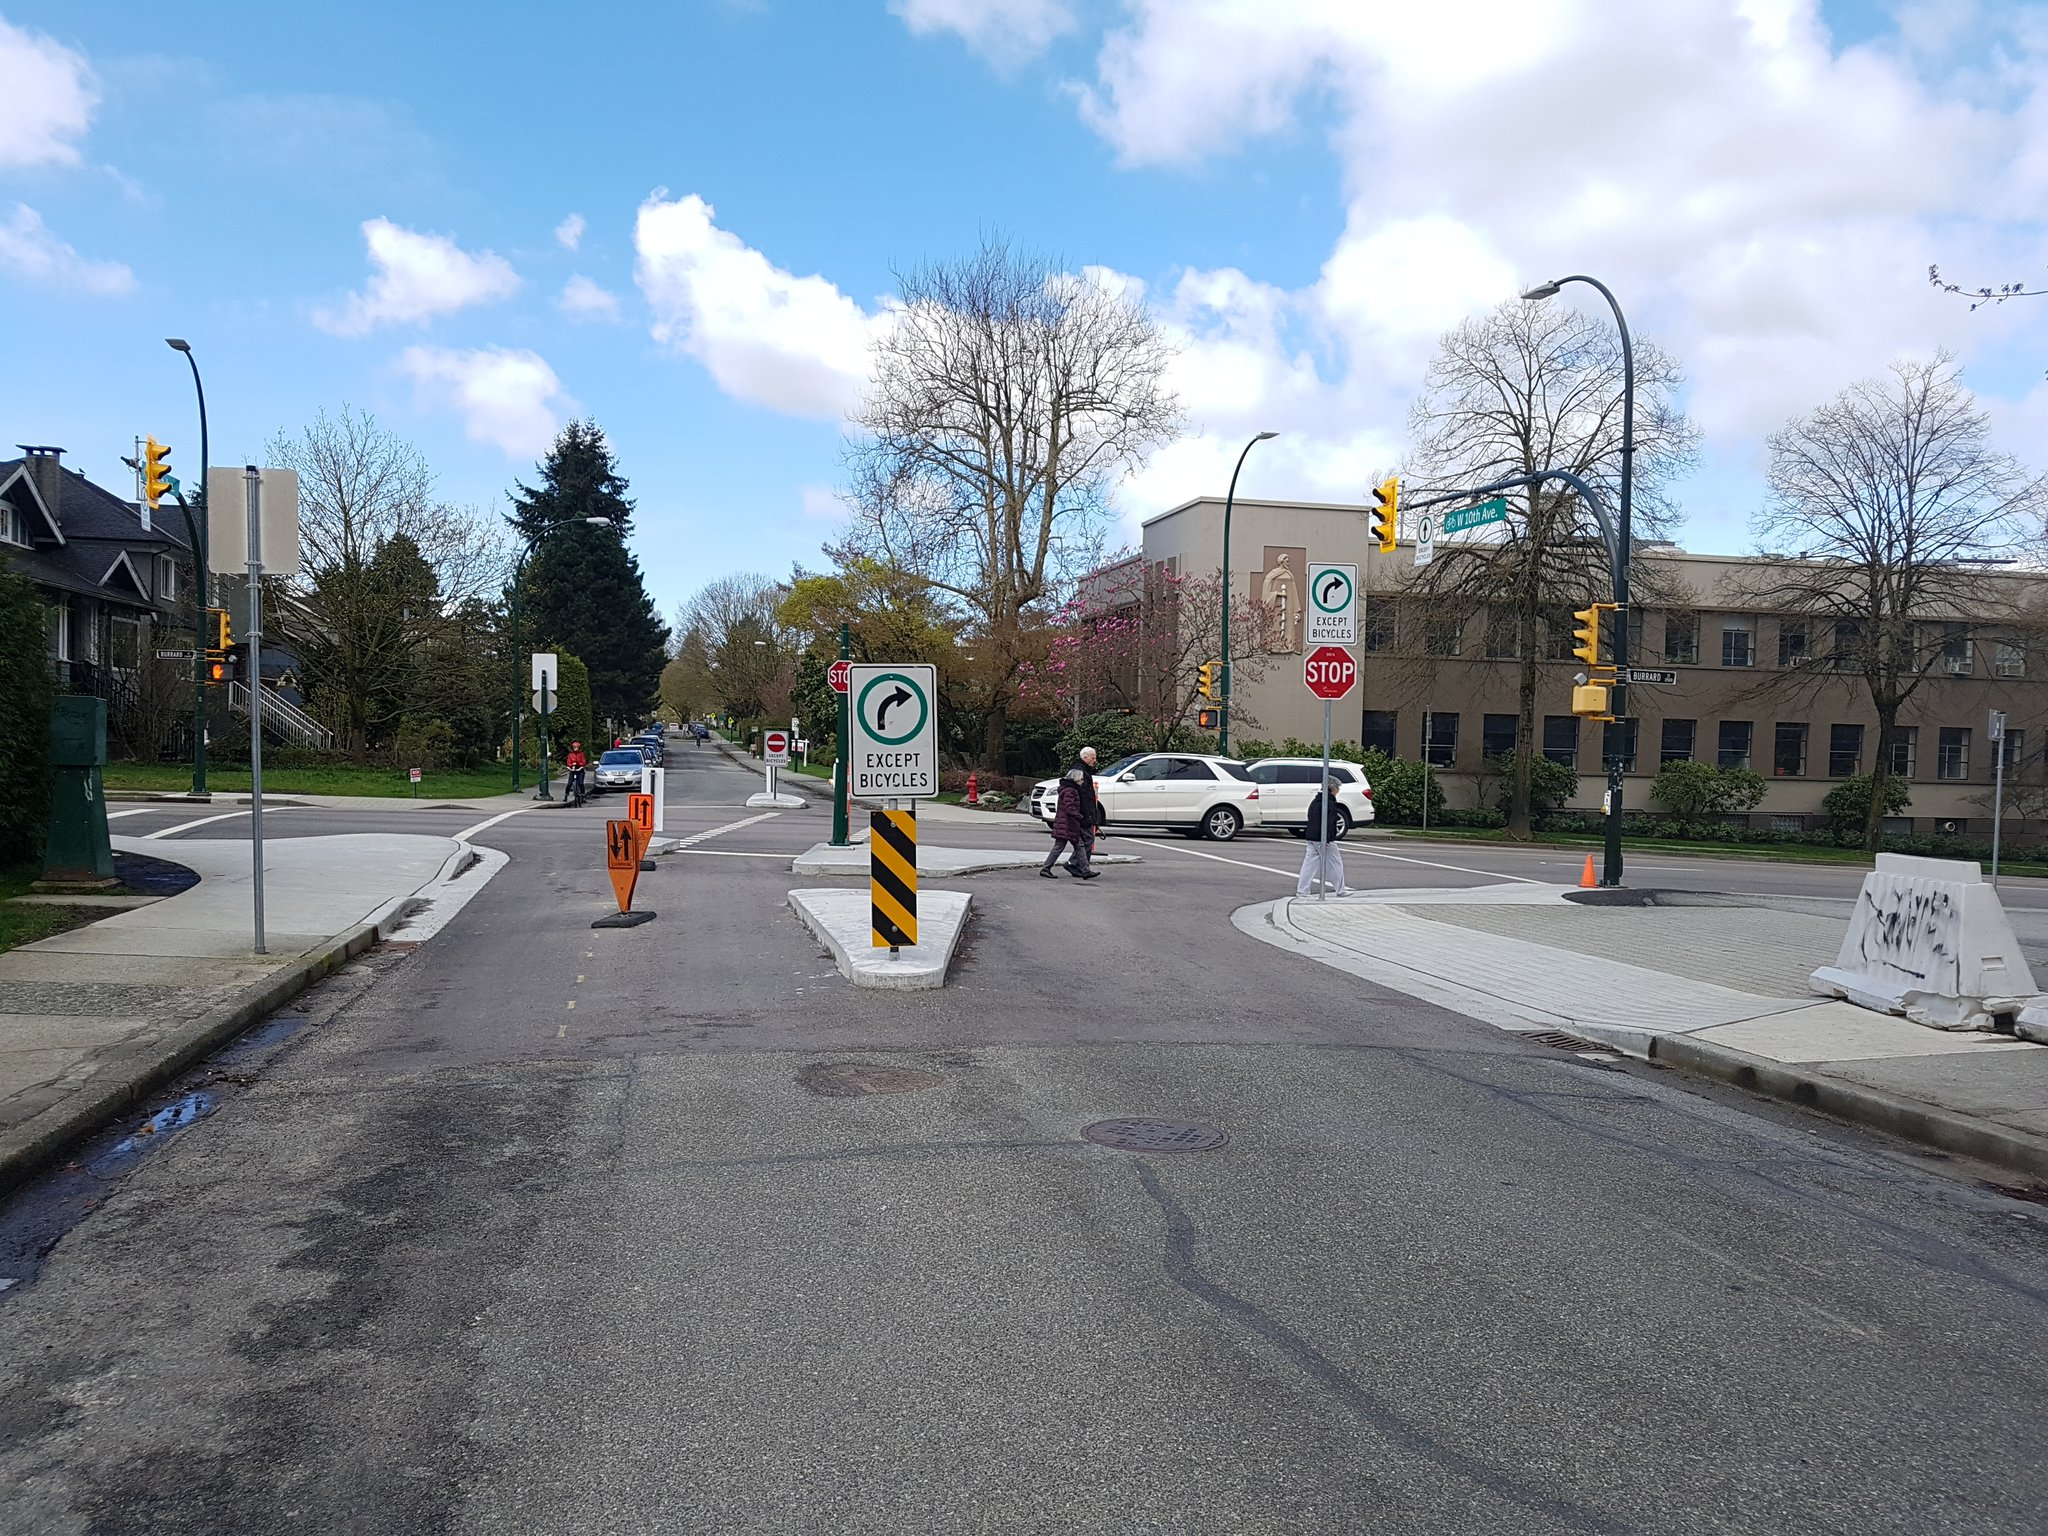 Lots of small spot improvements to lower the number of cars using the greenways, some of which are new #yyjbike https://t.co/vMuB5S9FJG